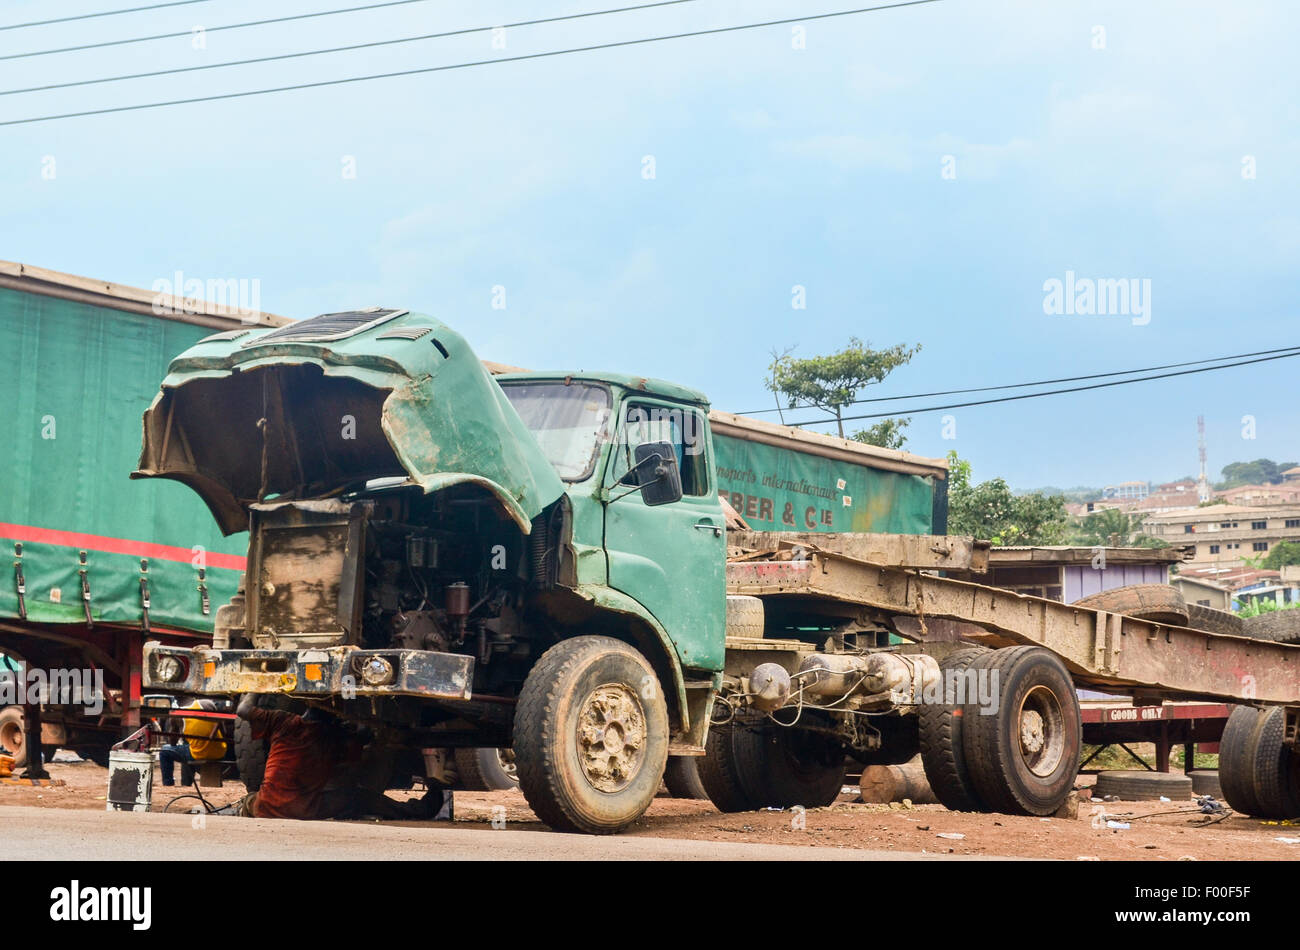 Truck being repaired in Suame Magazine, suburbs of Kumasi, one of the biggest industrial areas in Africa - Stock Image